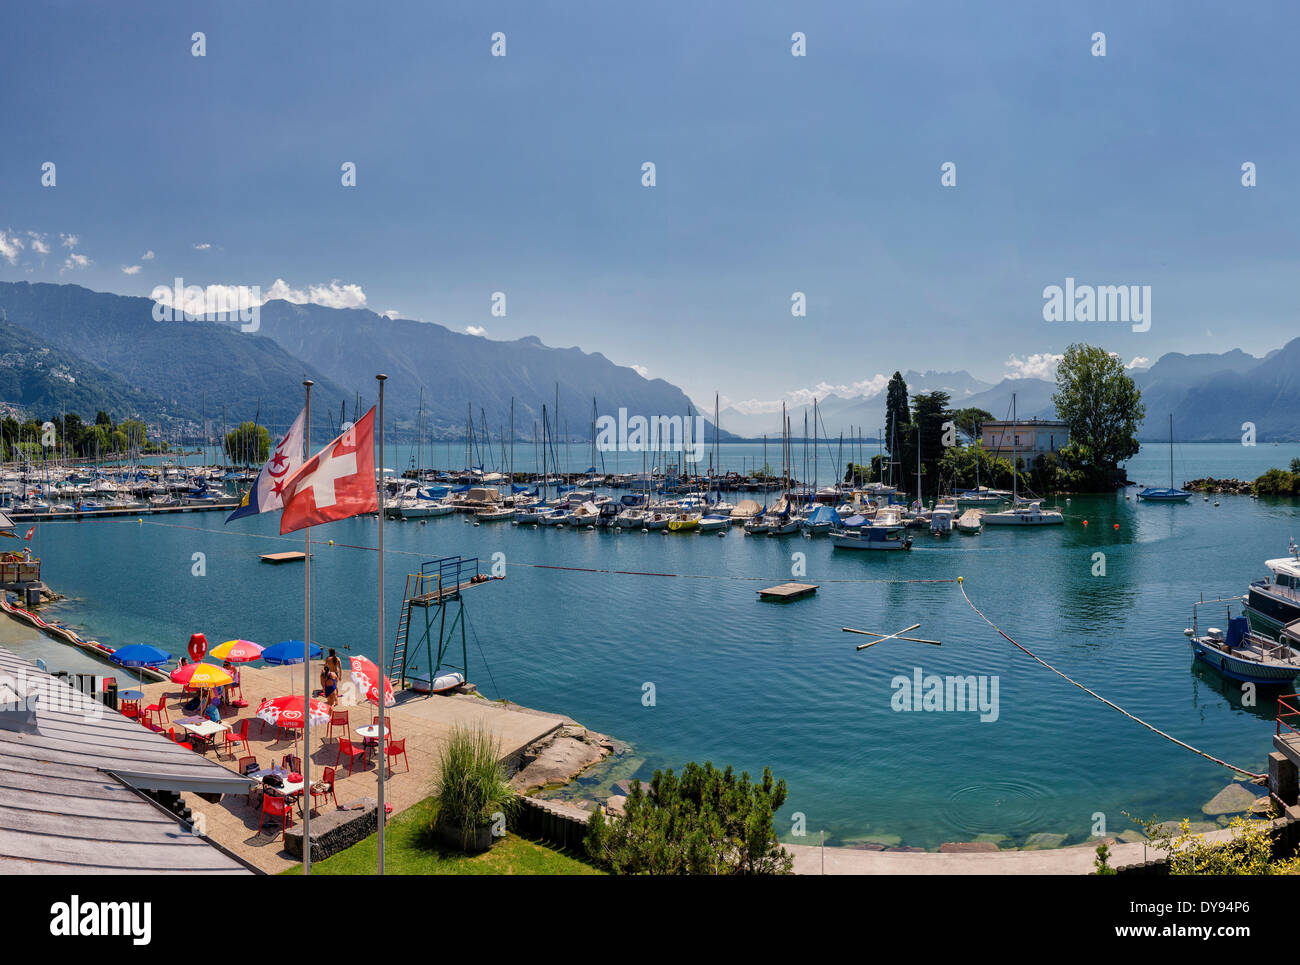 Harbour Clarens Lake Geneva Leman town village water summer mountains lake ships boat Montreux Vaud Switzerland Europe, - Stock Image